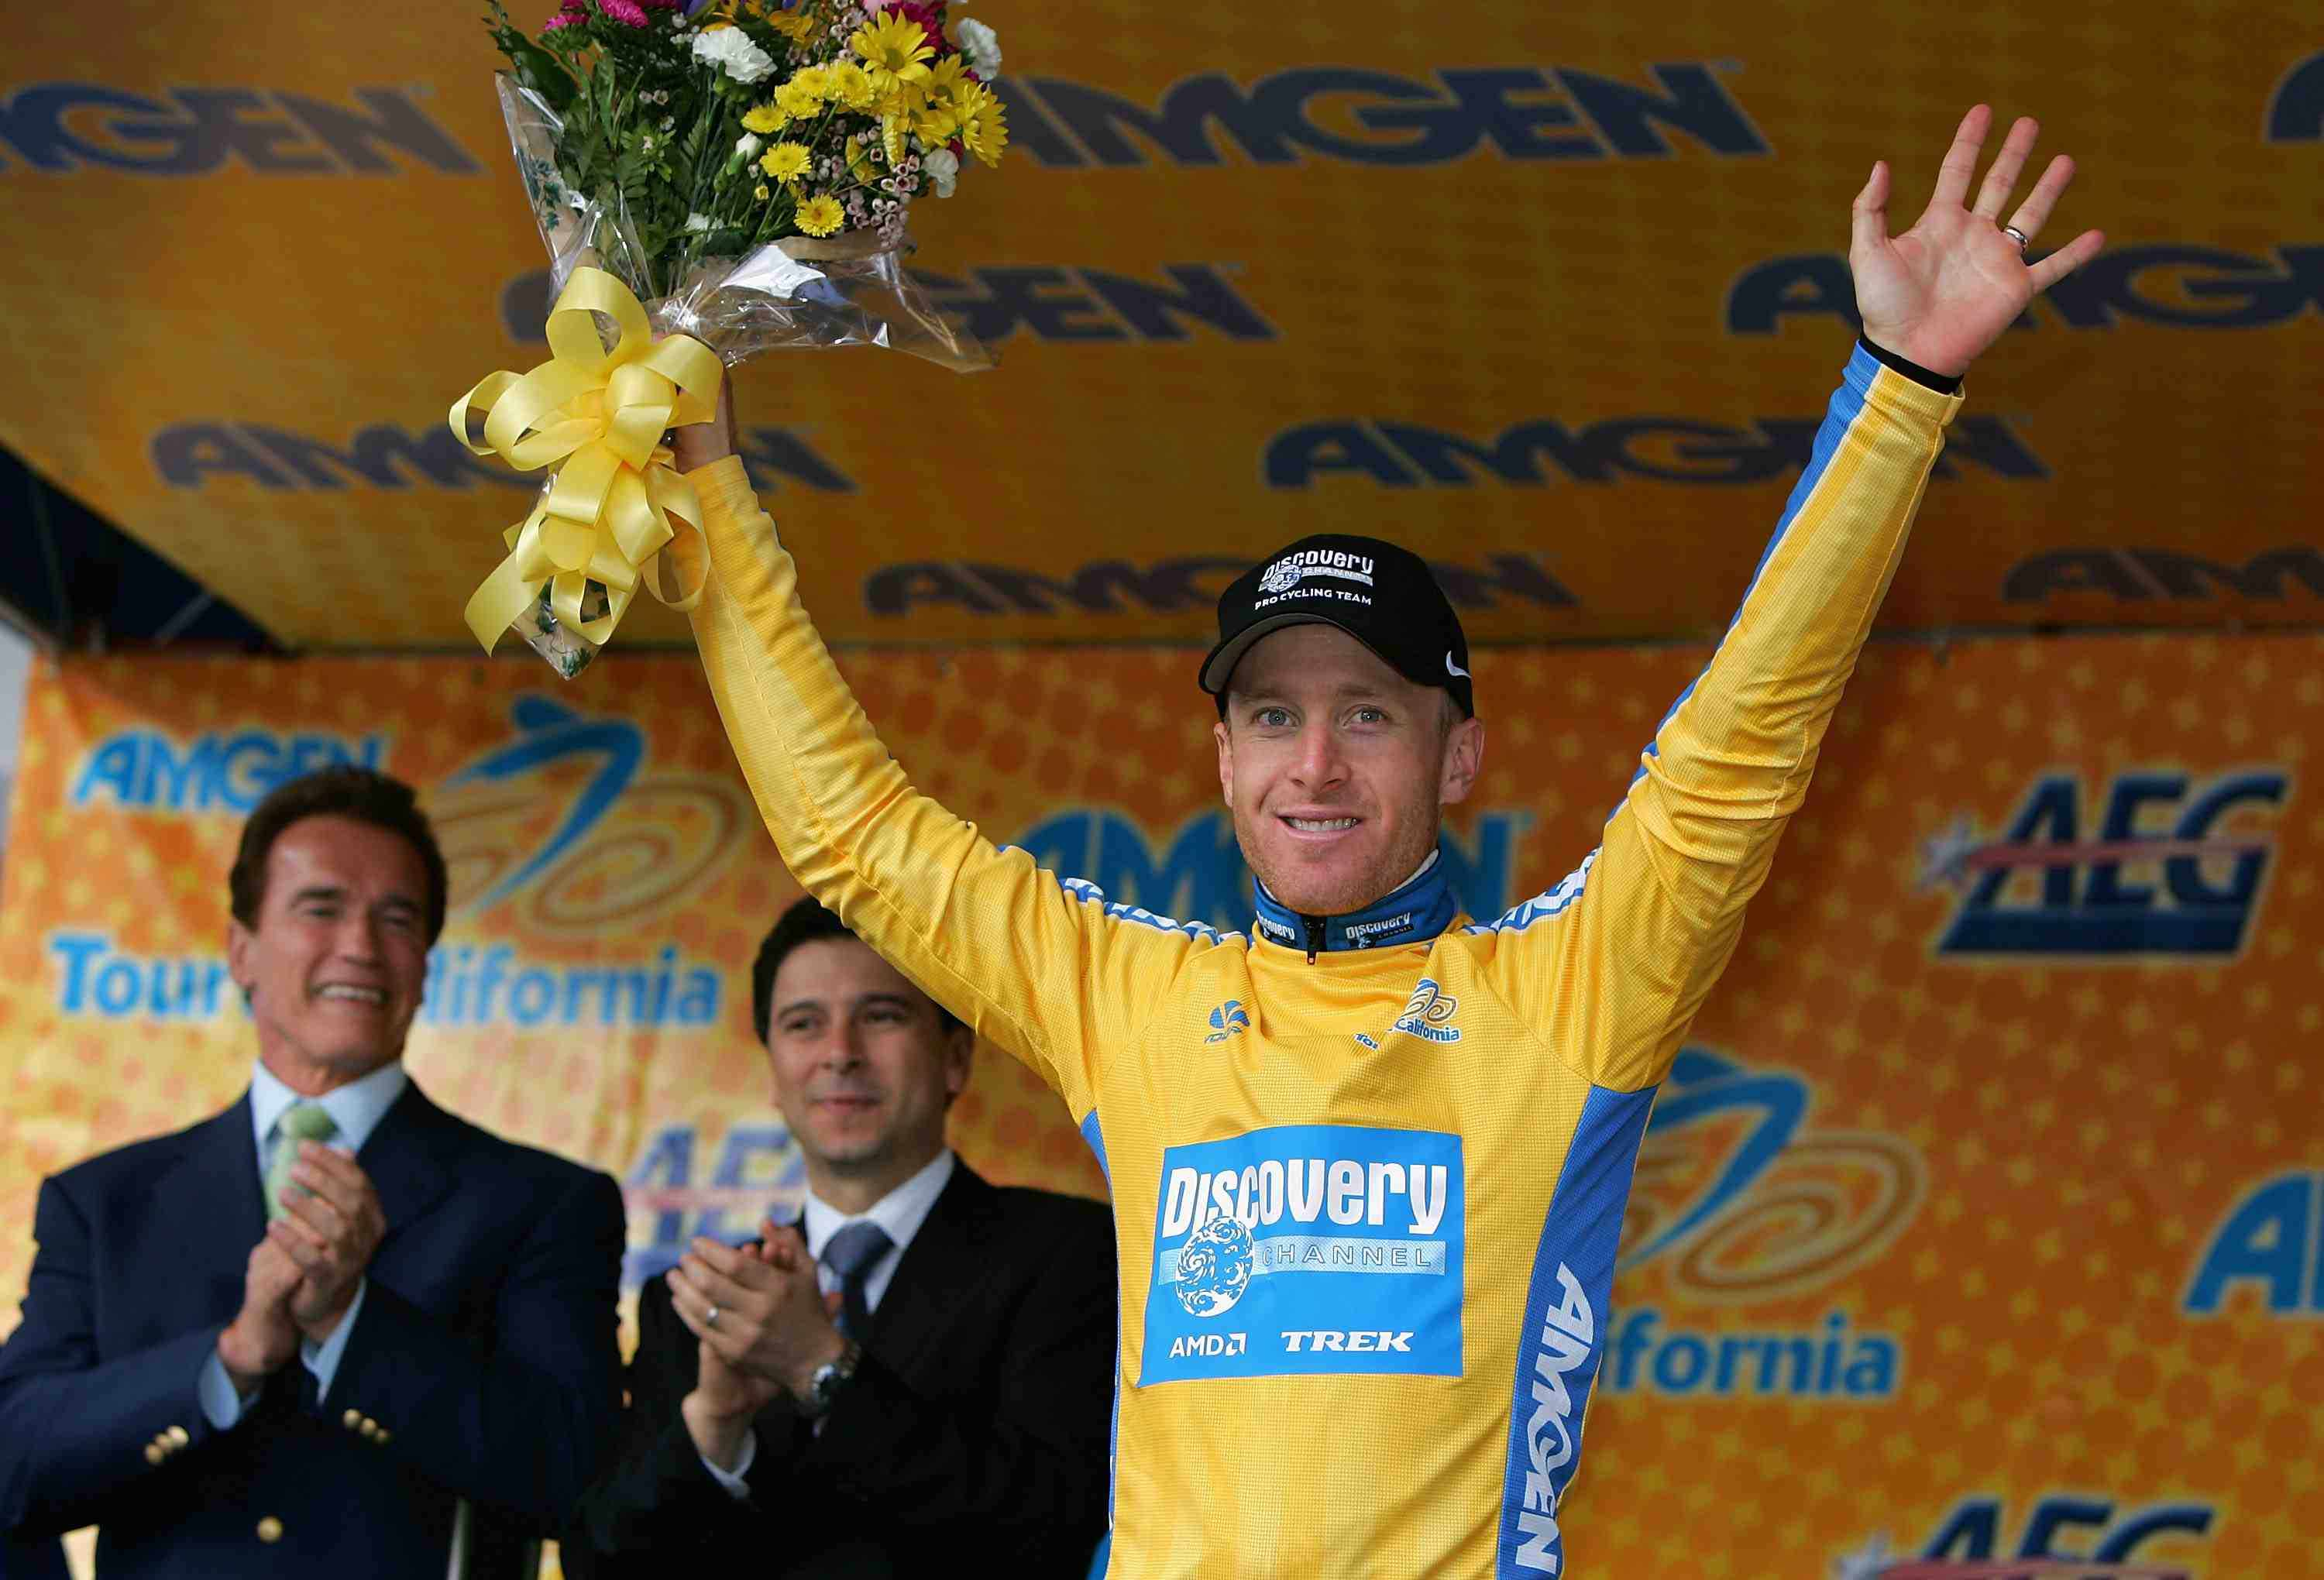 California governor Arnold Schwarzenegger (L) presented Levi Leipheimer with the Tour of California's leader's jersey in 2007.